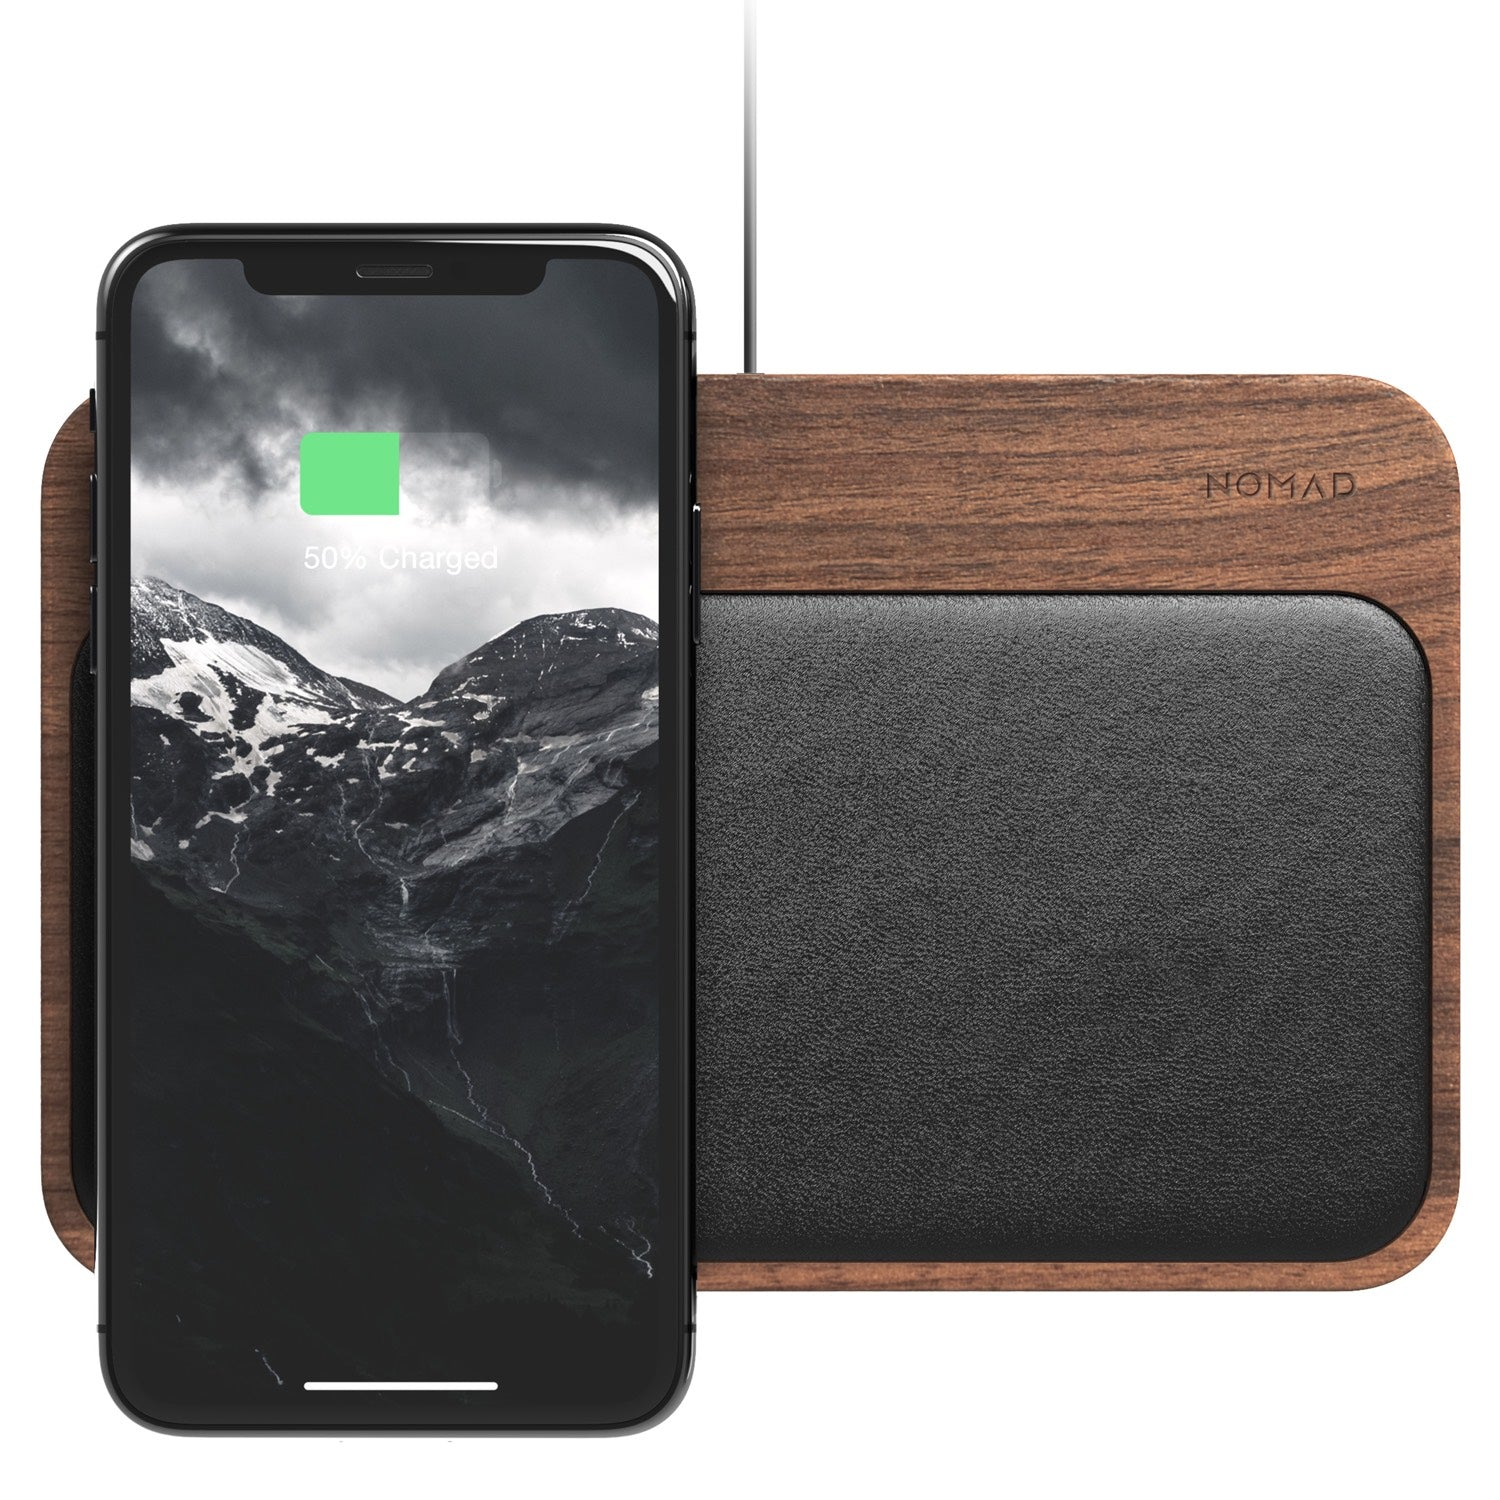 Base Station Charger - Walnut